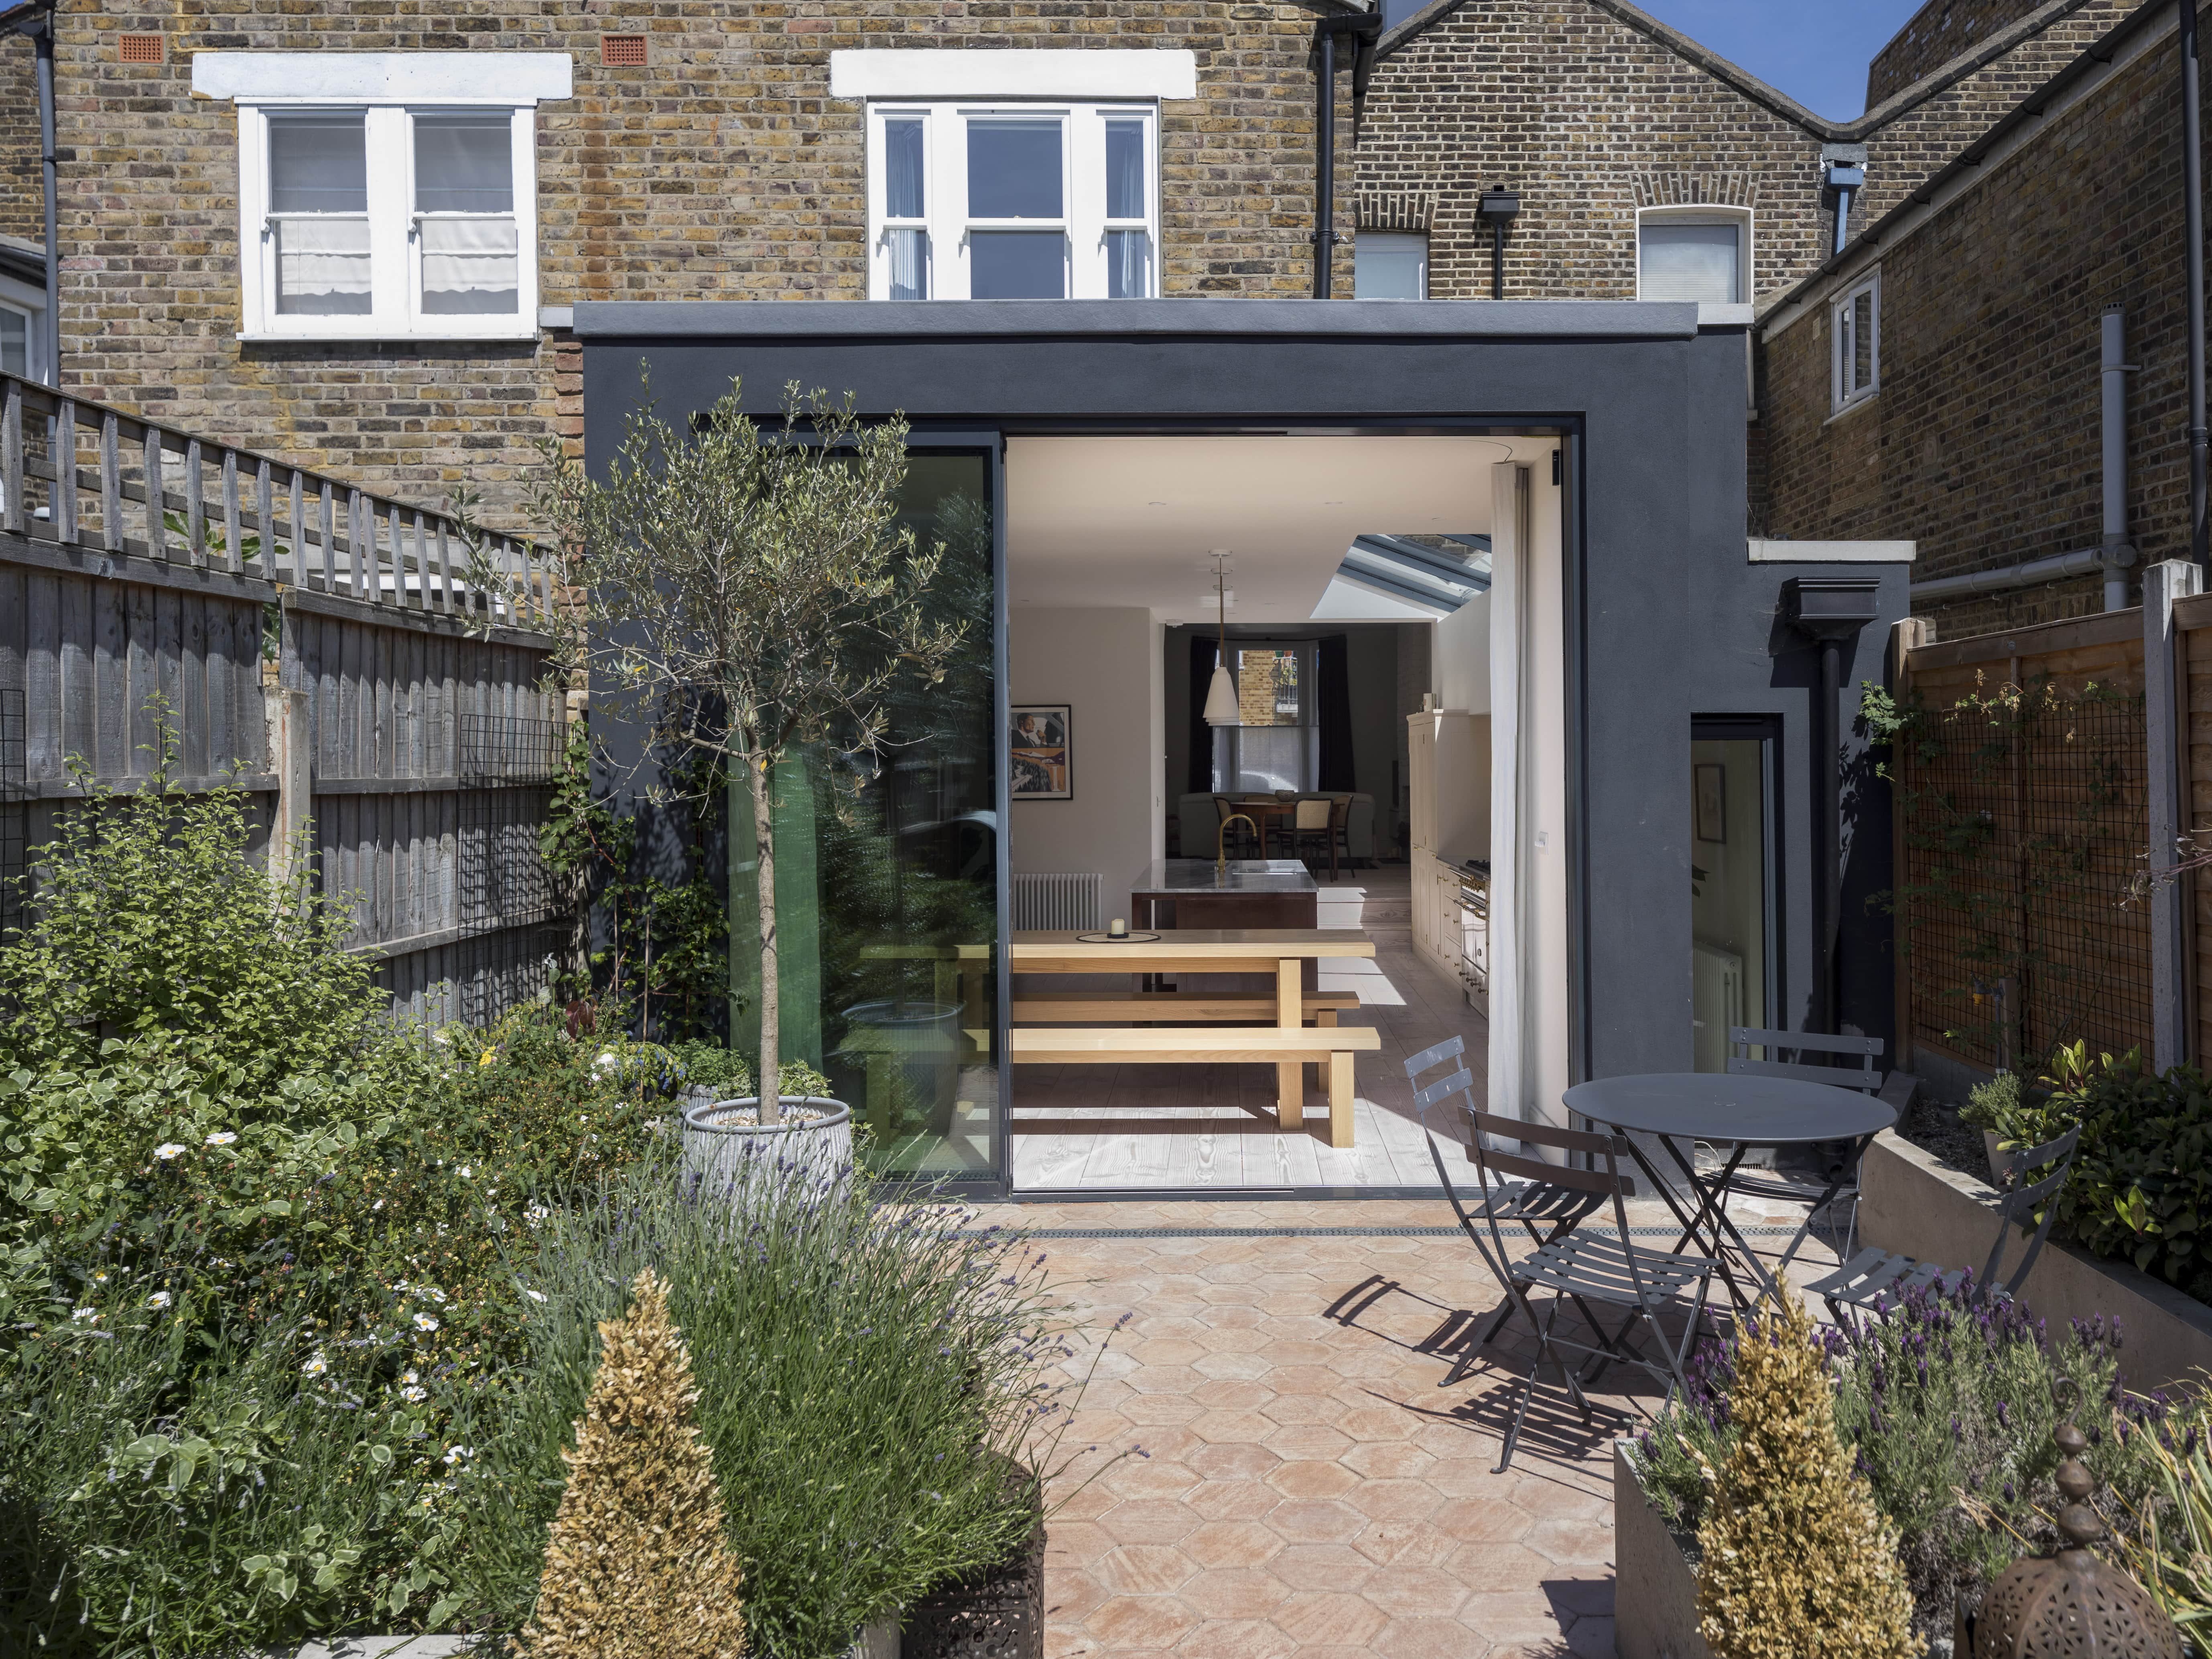 A residential building project in Fulham